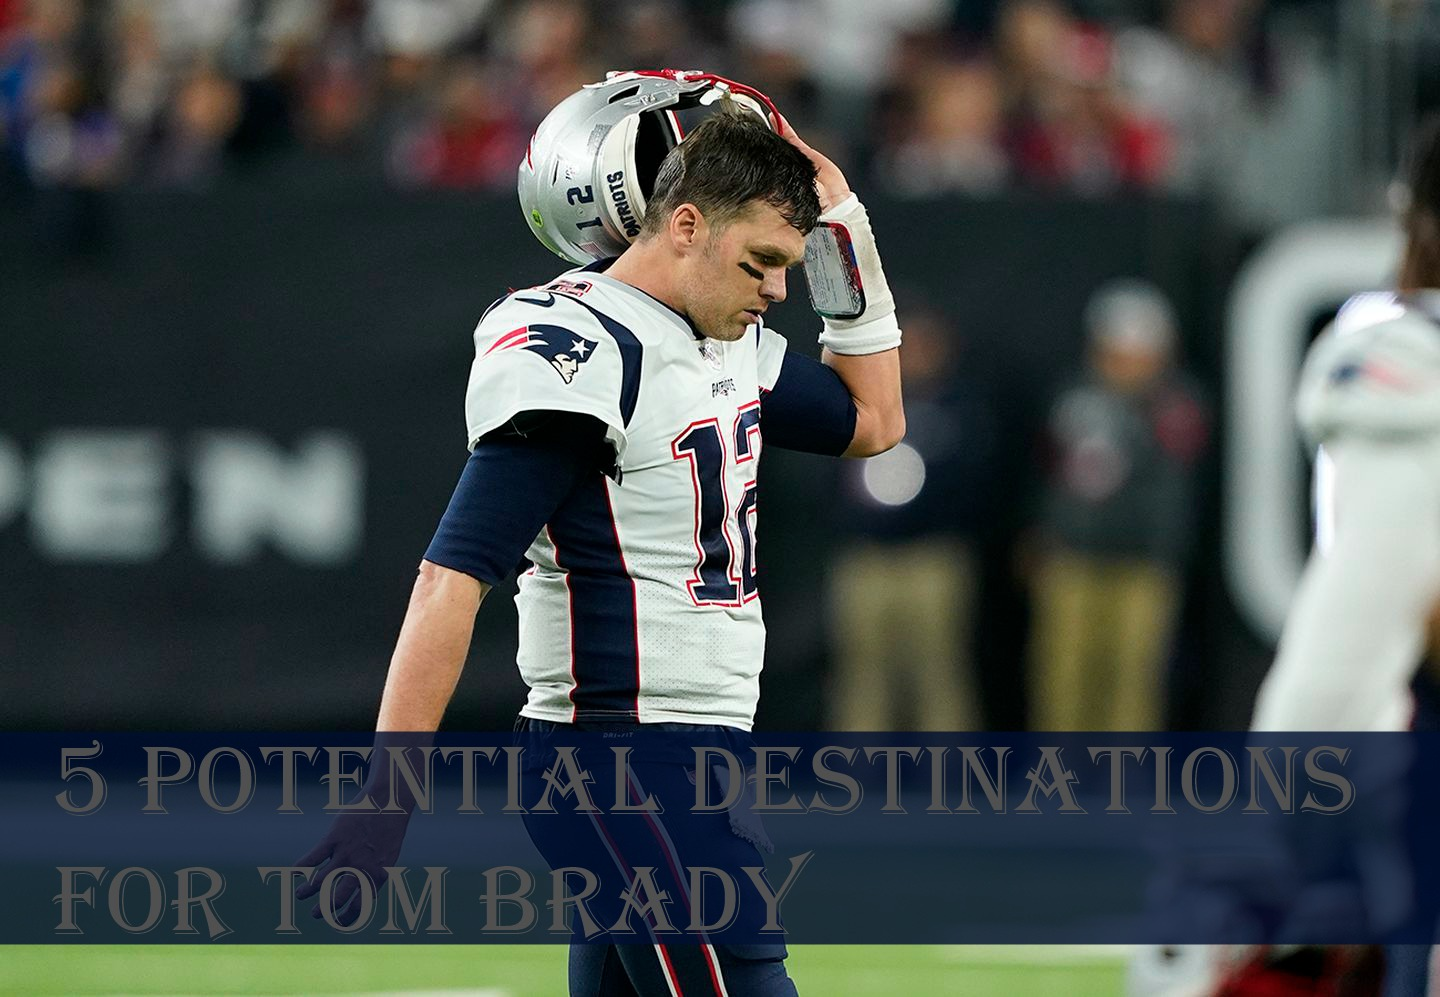 5 Potential Destinations for Tom Brady